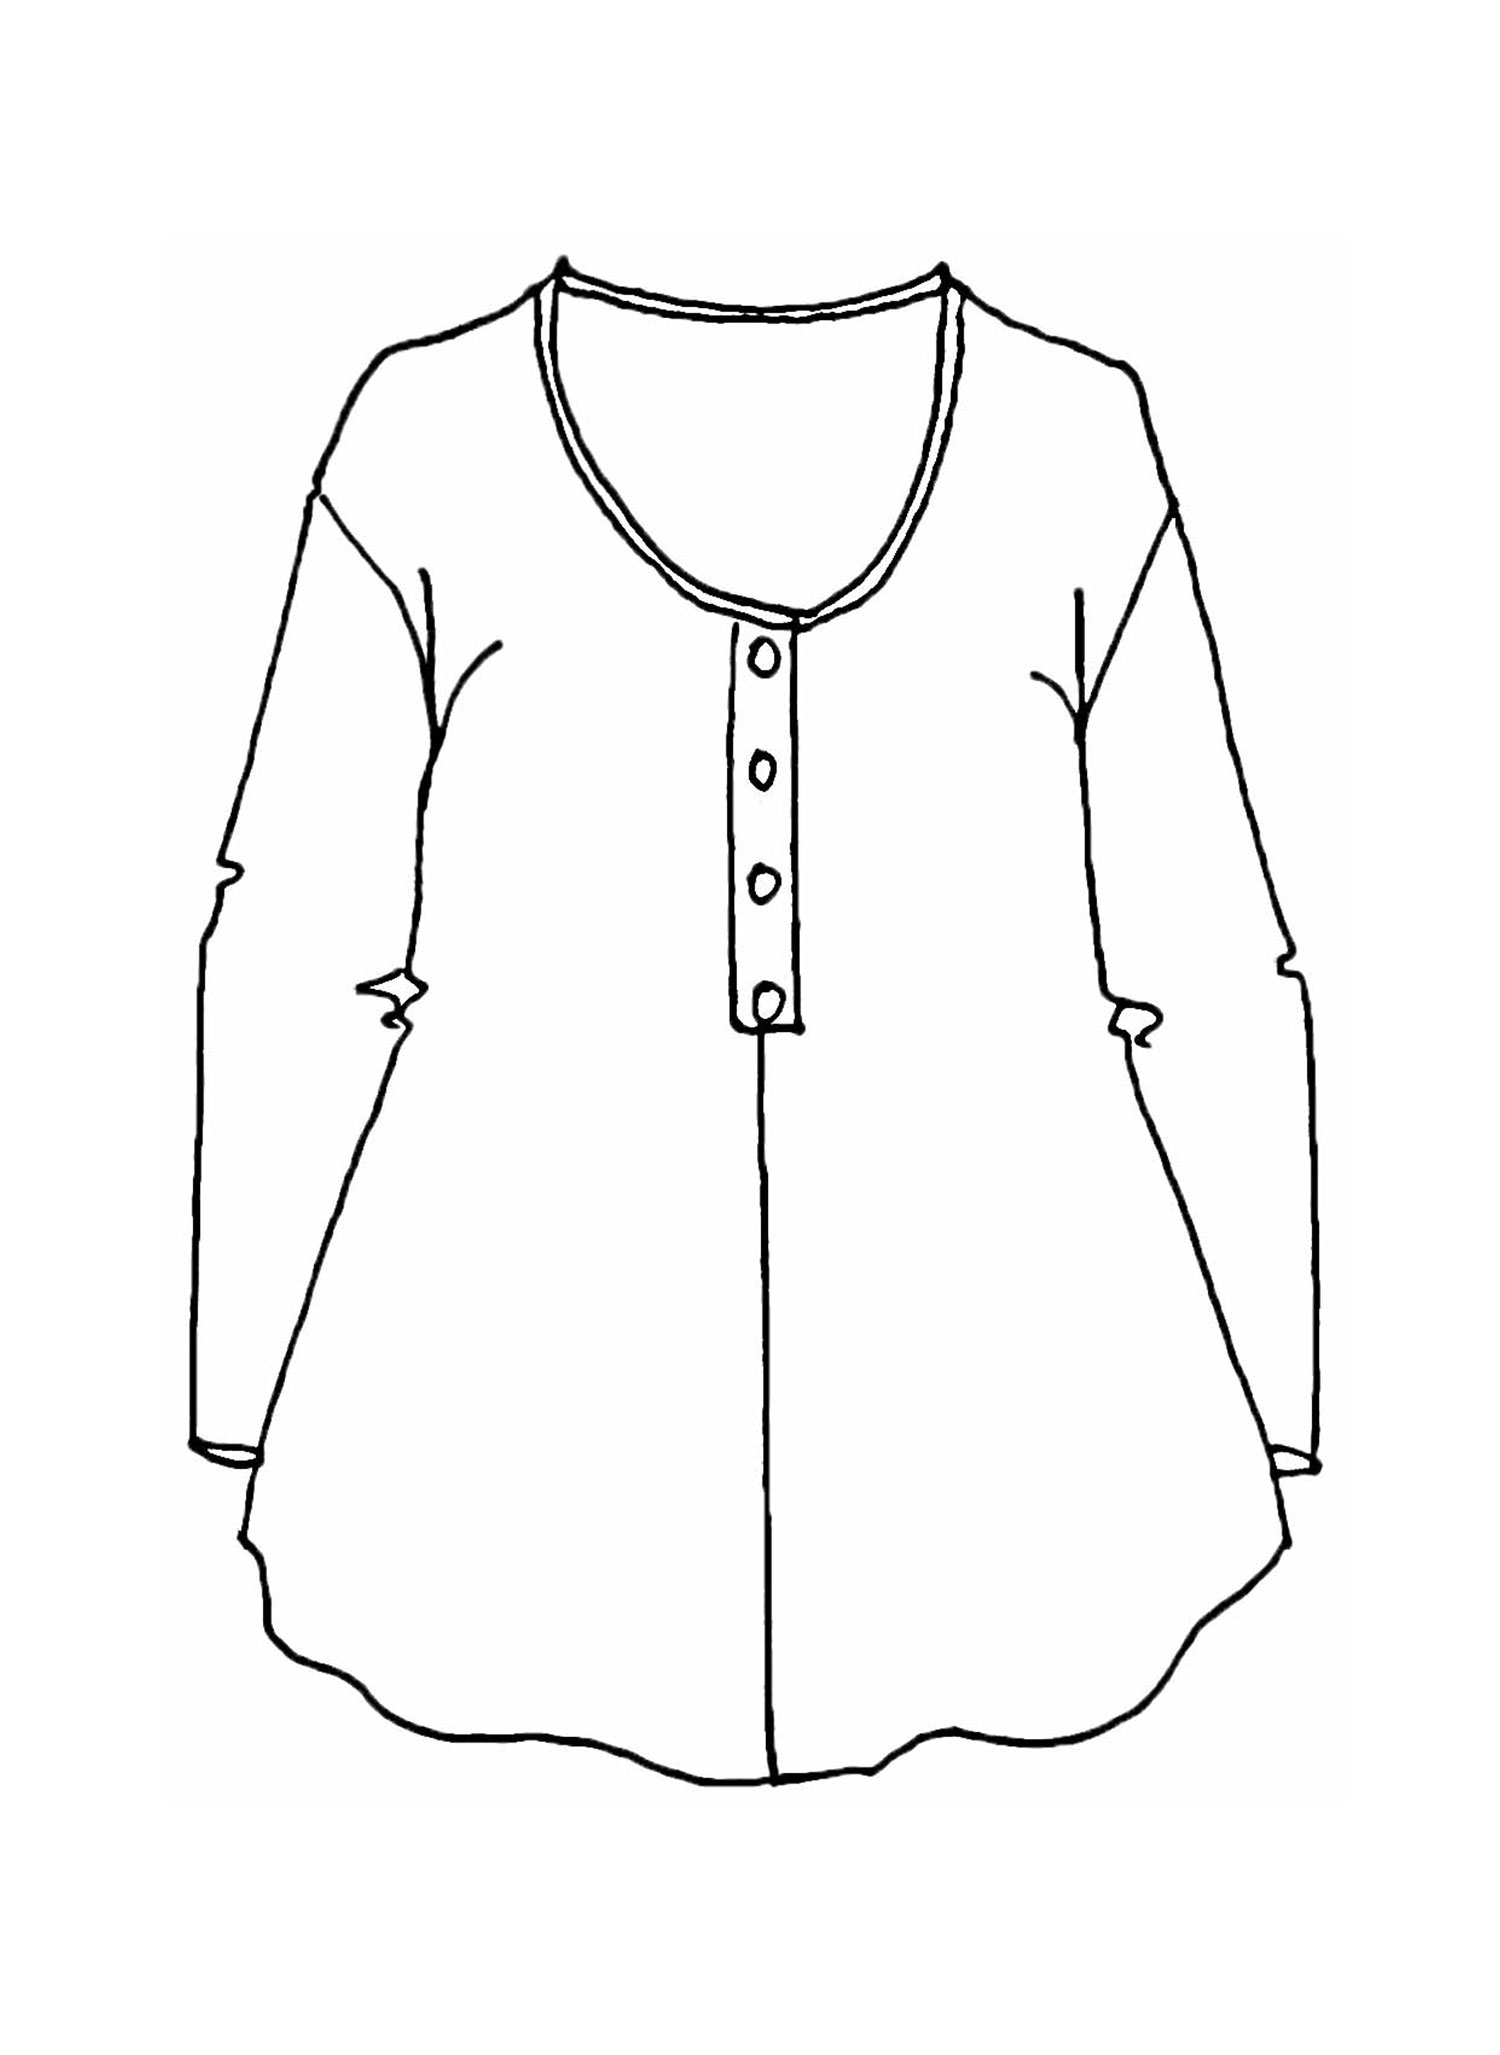 Current Blouse sketch image